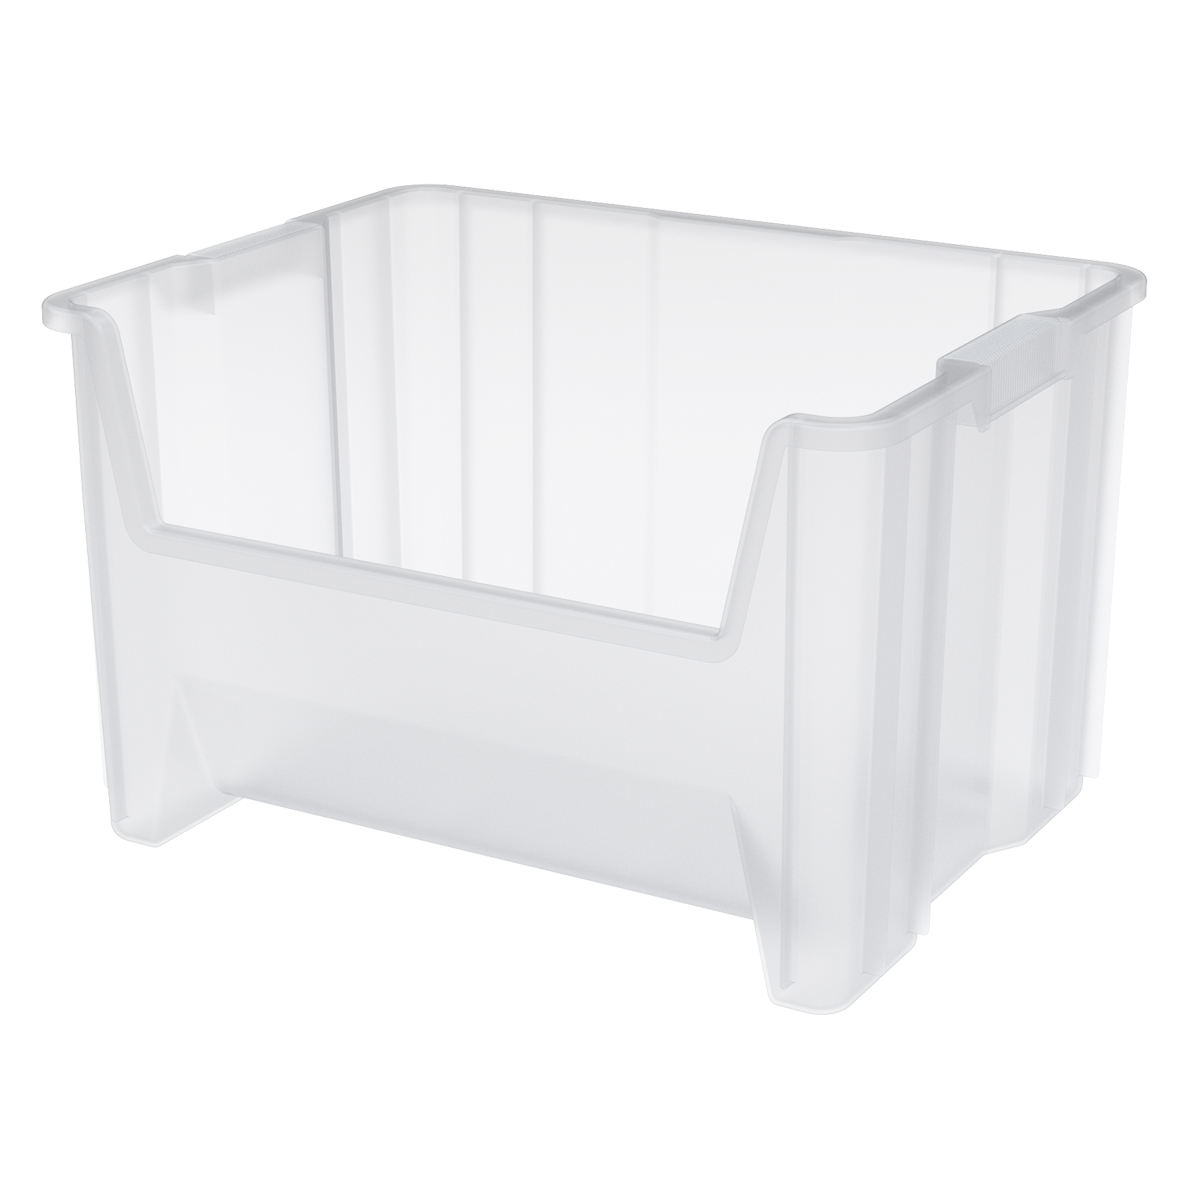 Stak-N-Store Bin 15-1/4 x 19-7/8 x 12-7/16, Clear (13017SCLAR).  This item sold in carton quantities of 3.